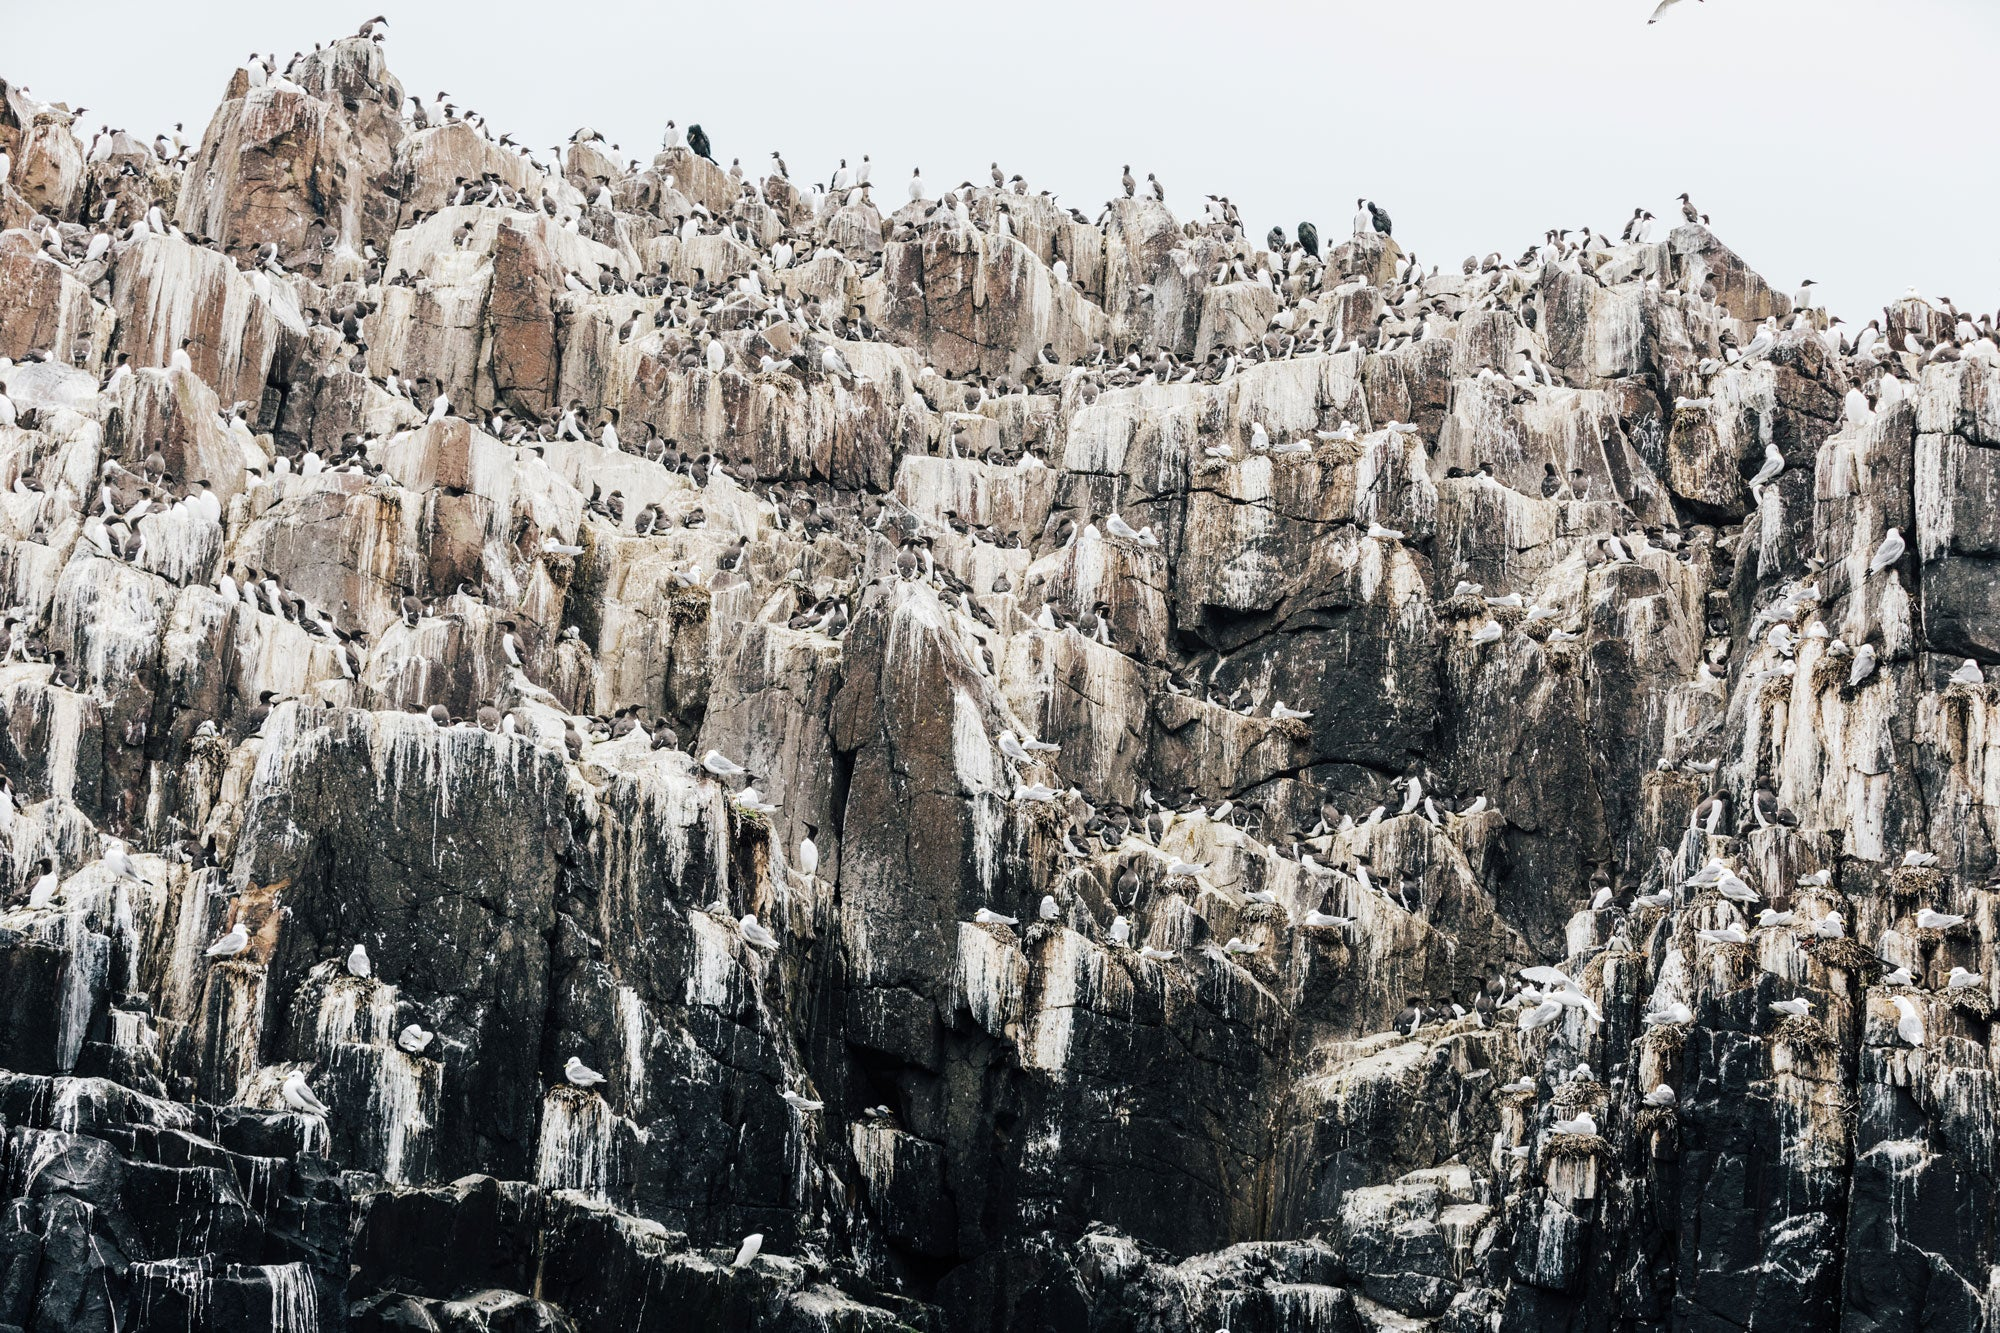 Cliffs-of-the-farne-islands-teeming-with-seabird-colonies